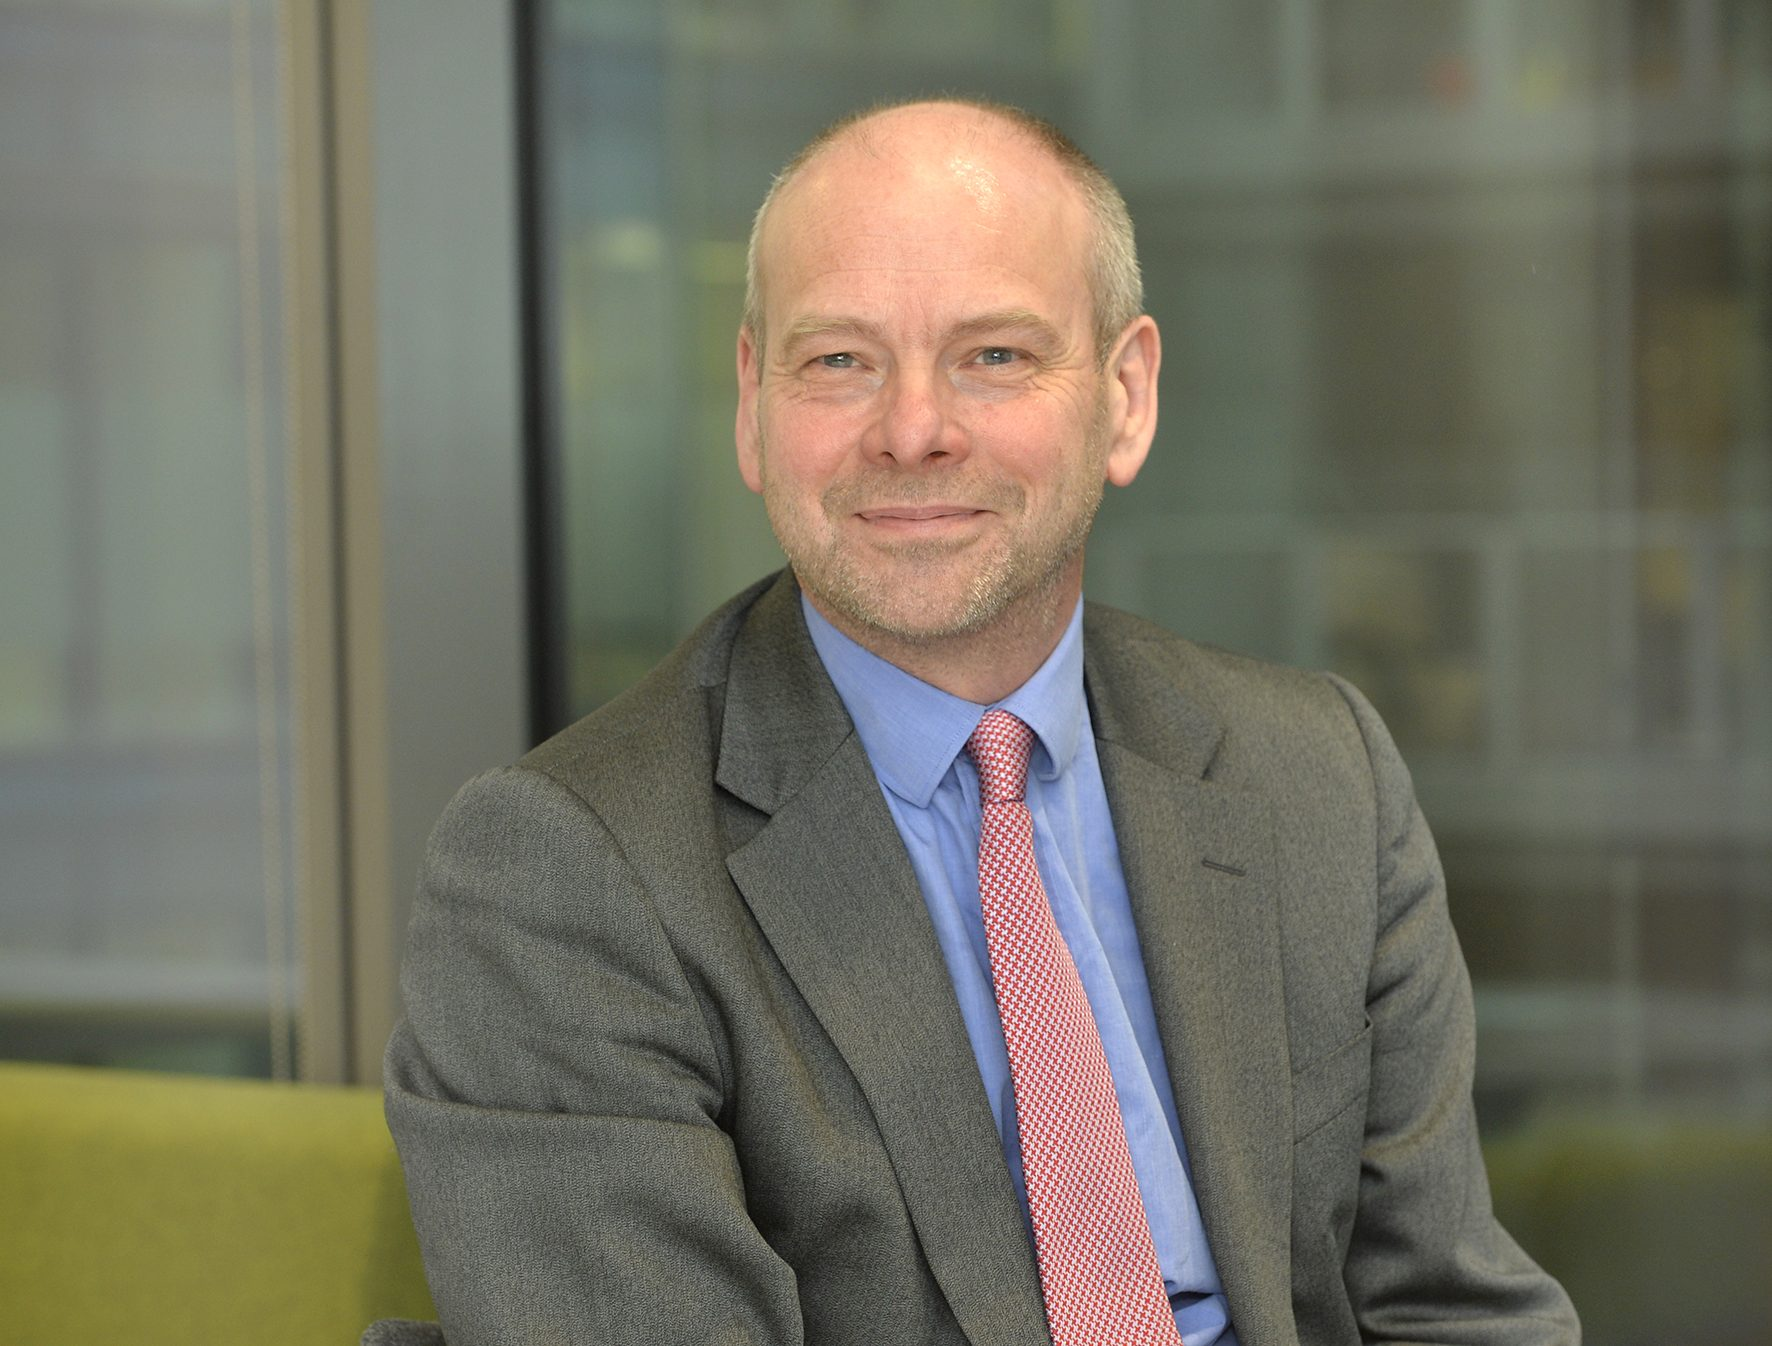 Phil Morgan The Social Housing White Paper and tenant engagement ...